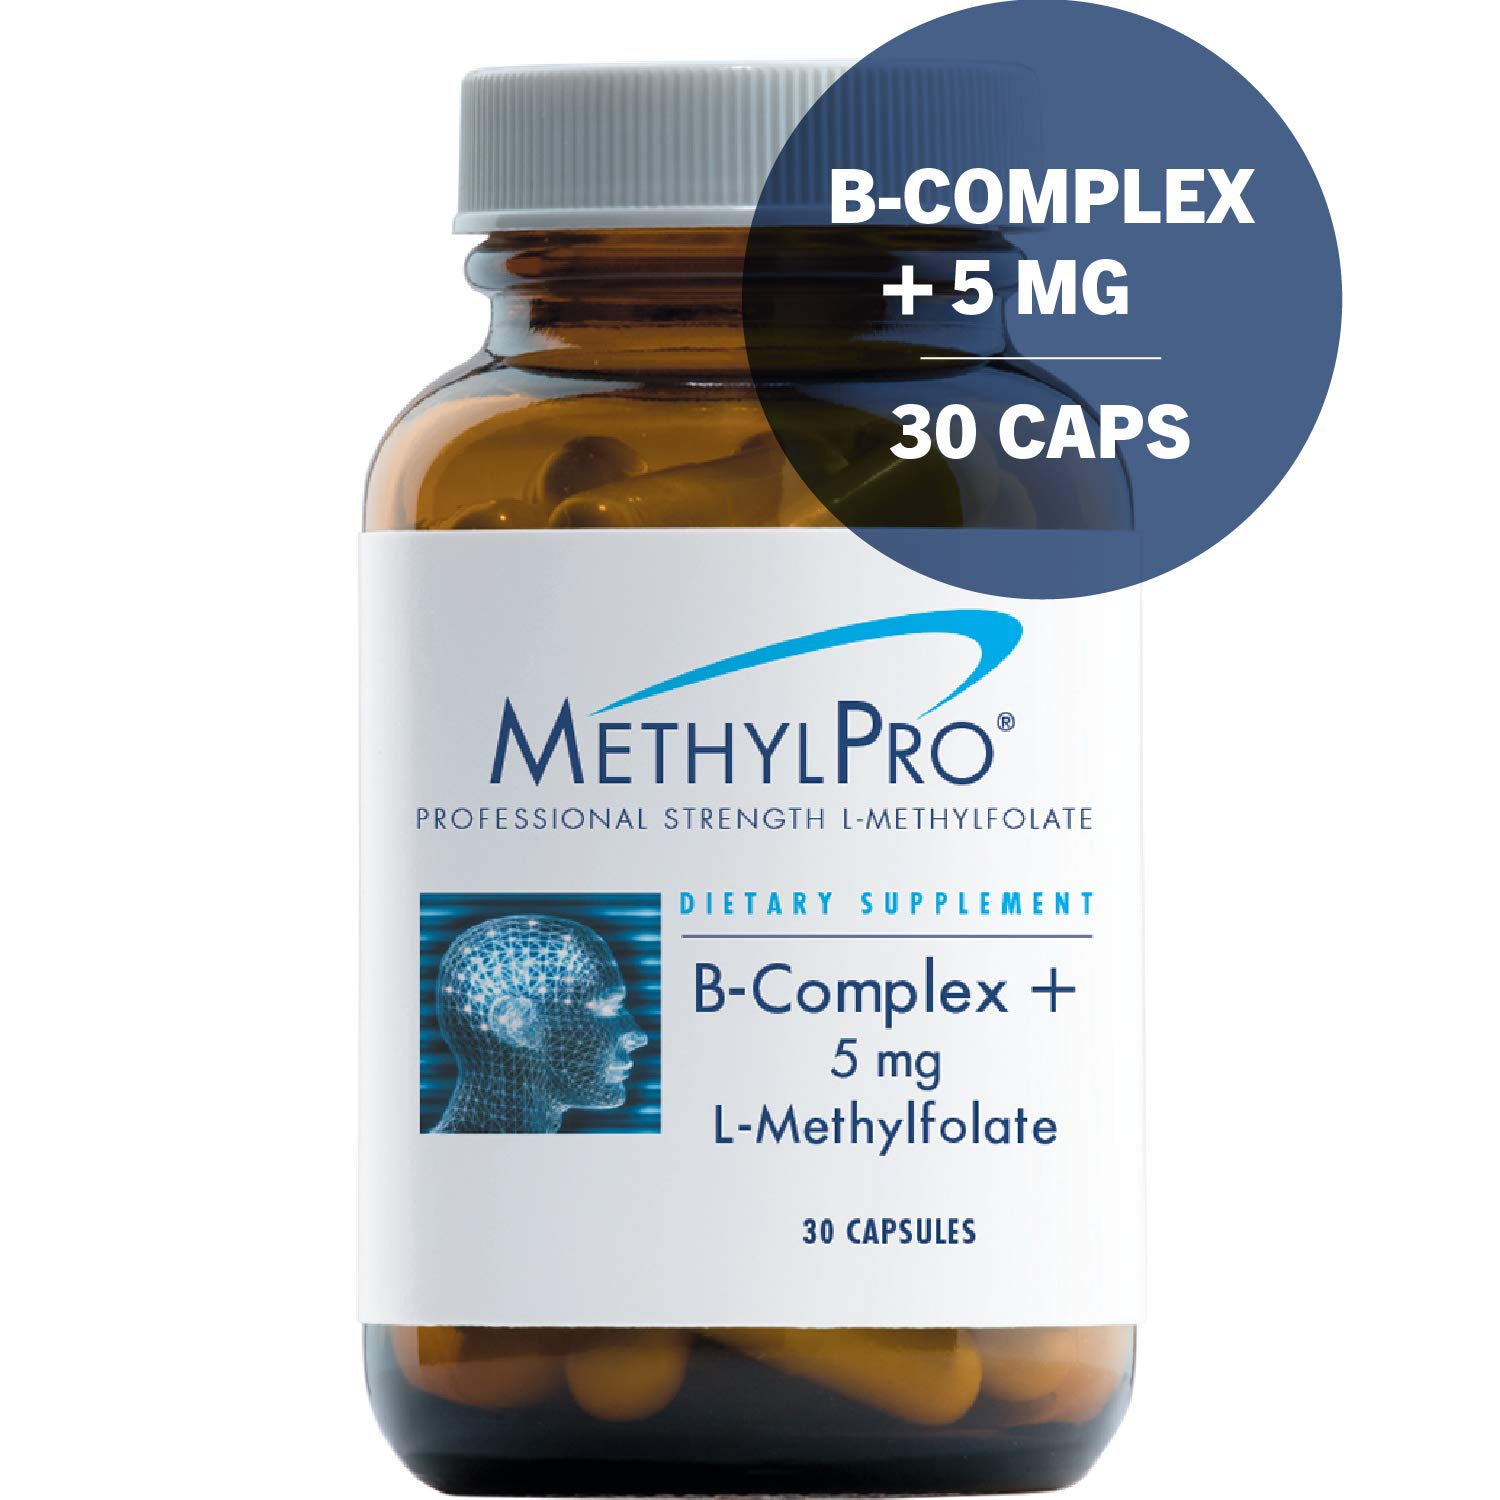 MethylPro B-Complex + 5mg L-Methylfolate 30 Capsules - Professional Strength Active Folate for Energy + Mood Support with Methyl B12 + B6 as P-5-P, Non-GMO + Gluten-Free by MethylPro